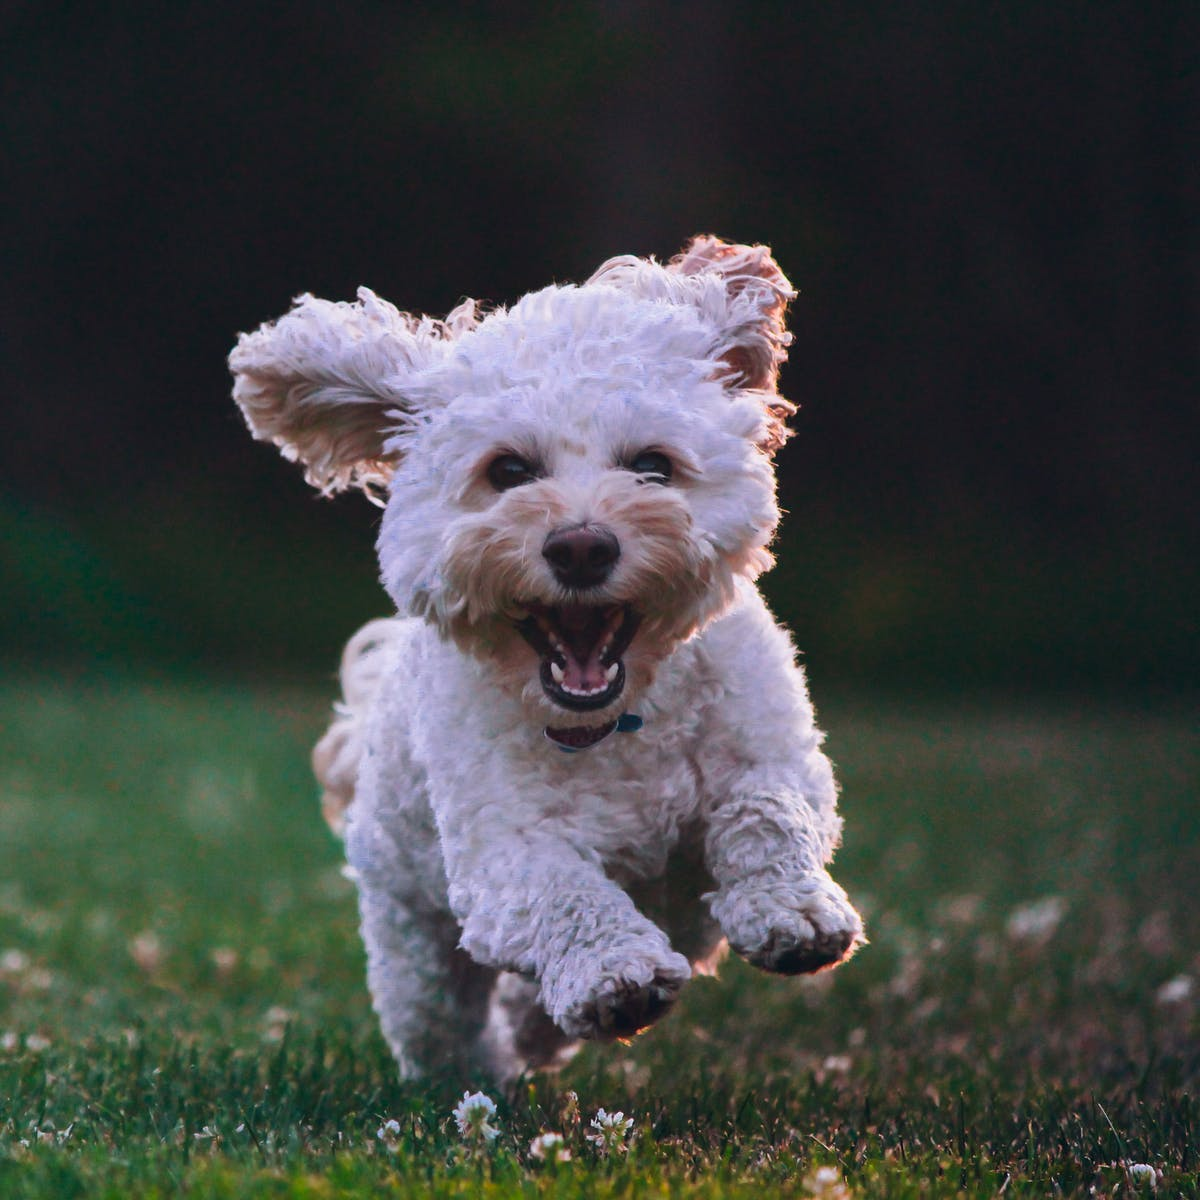 Is Your Dog Actually Happy? An Animal Behaviorist Explains